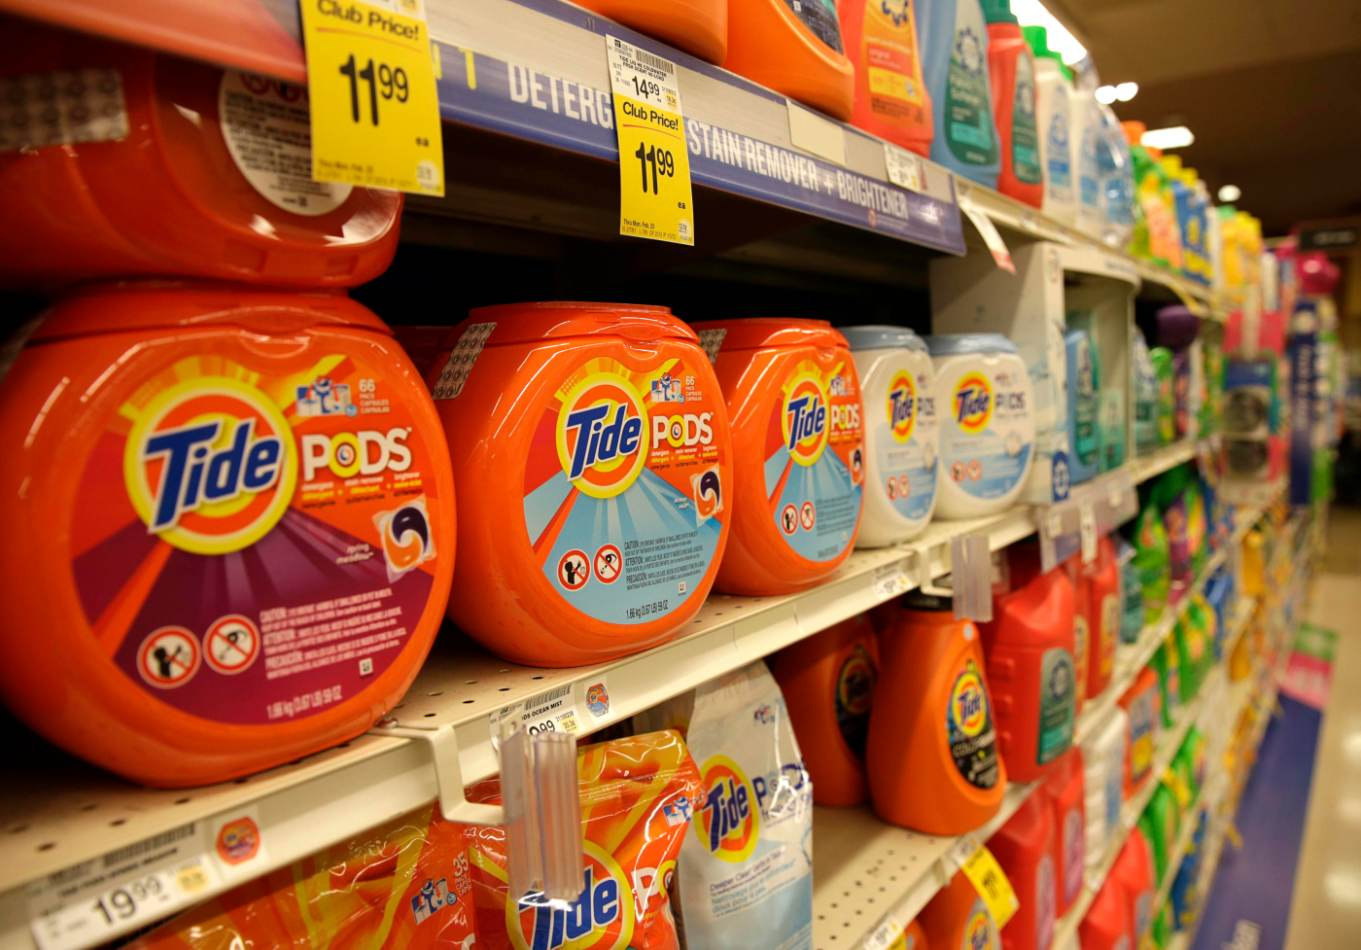 People are eating Tide laundry pods and this is what P&G is doing